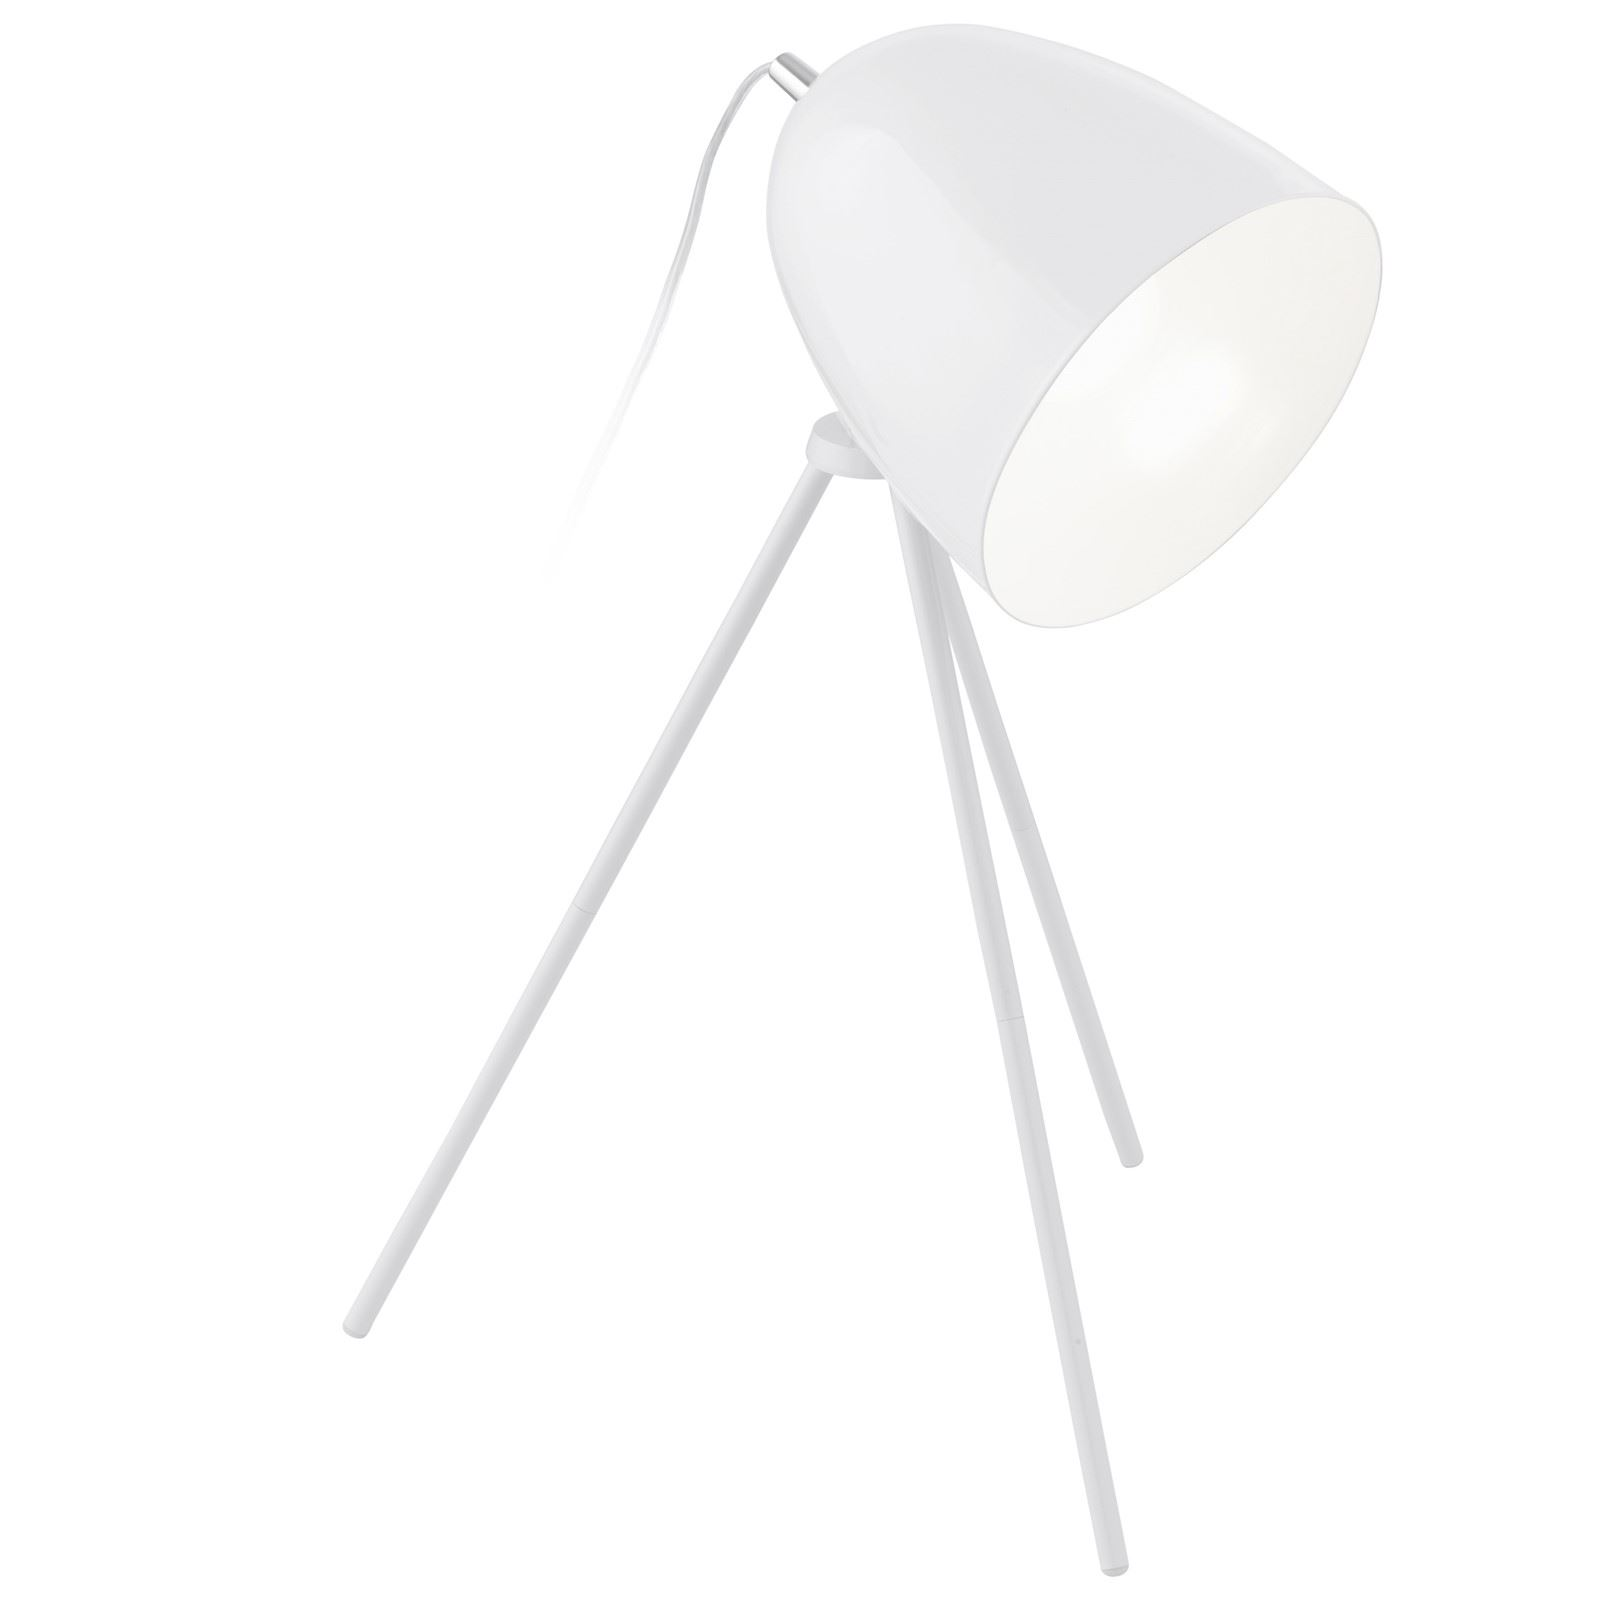 Don Diego Stylish Table Lamp 1 Light E27 White, Chrome Finish